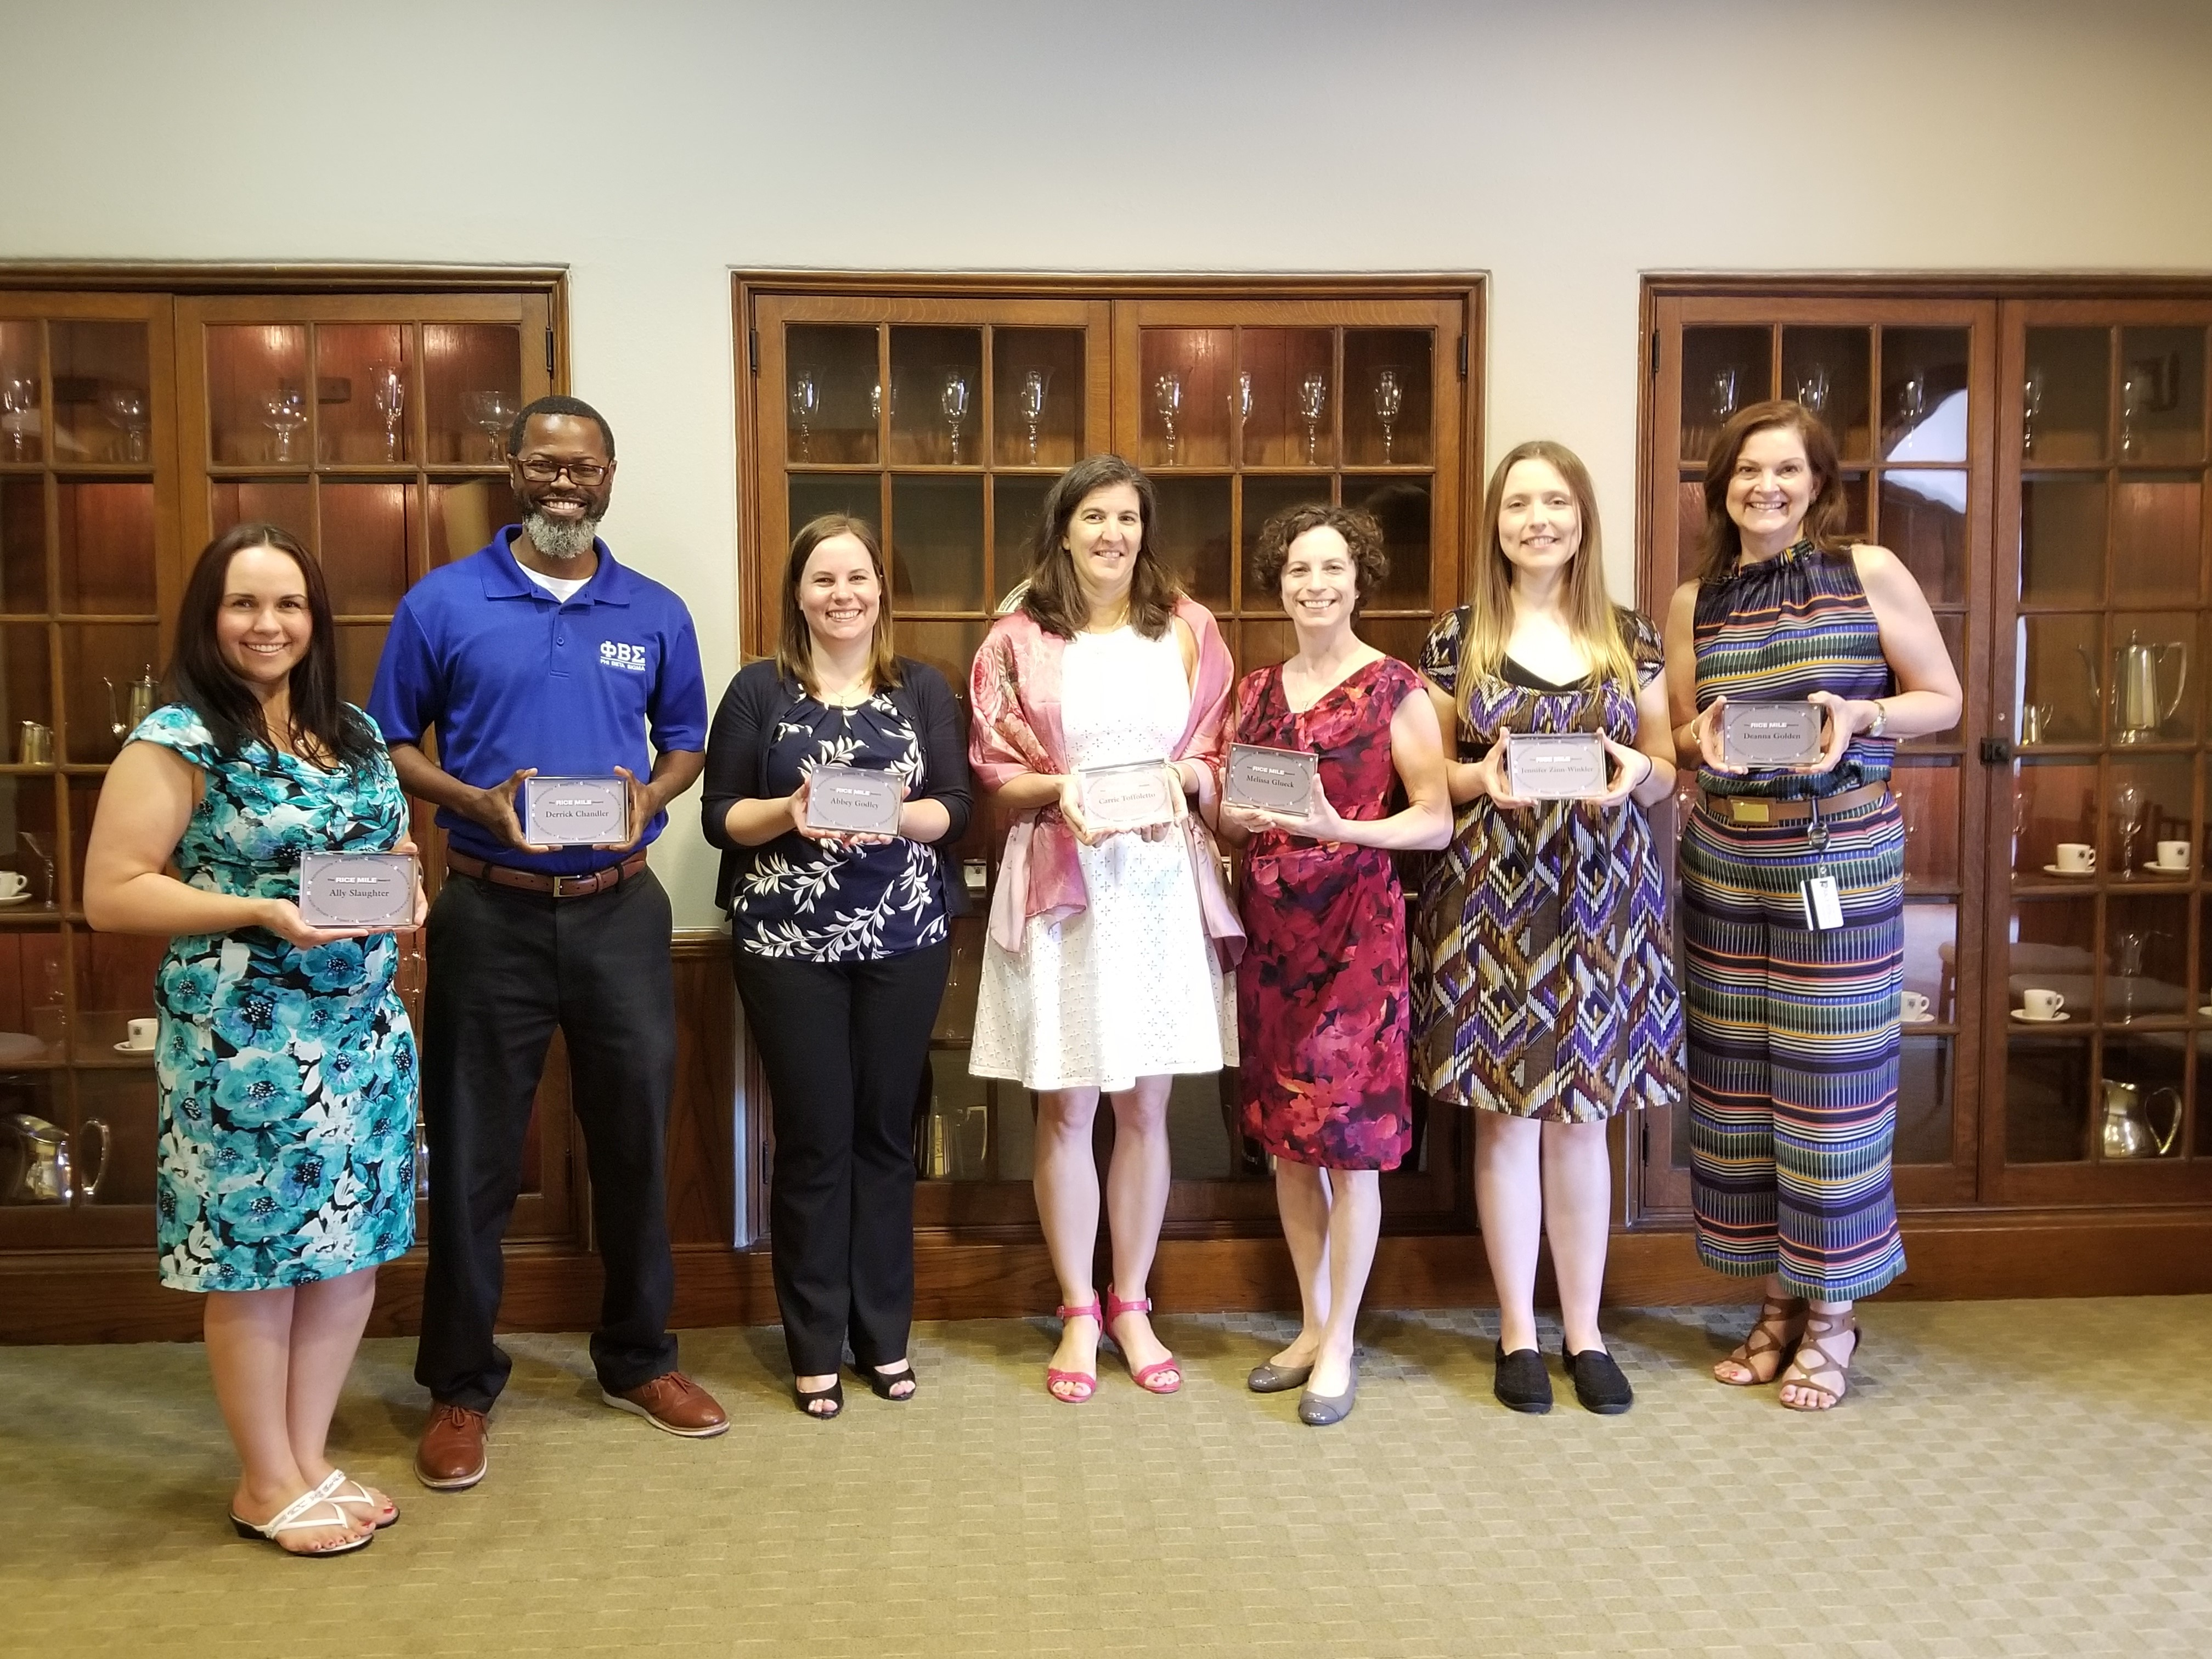 The first RICE MILE awarded to the Developing World Class Staff Project Team on April 4, 2018